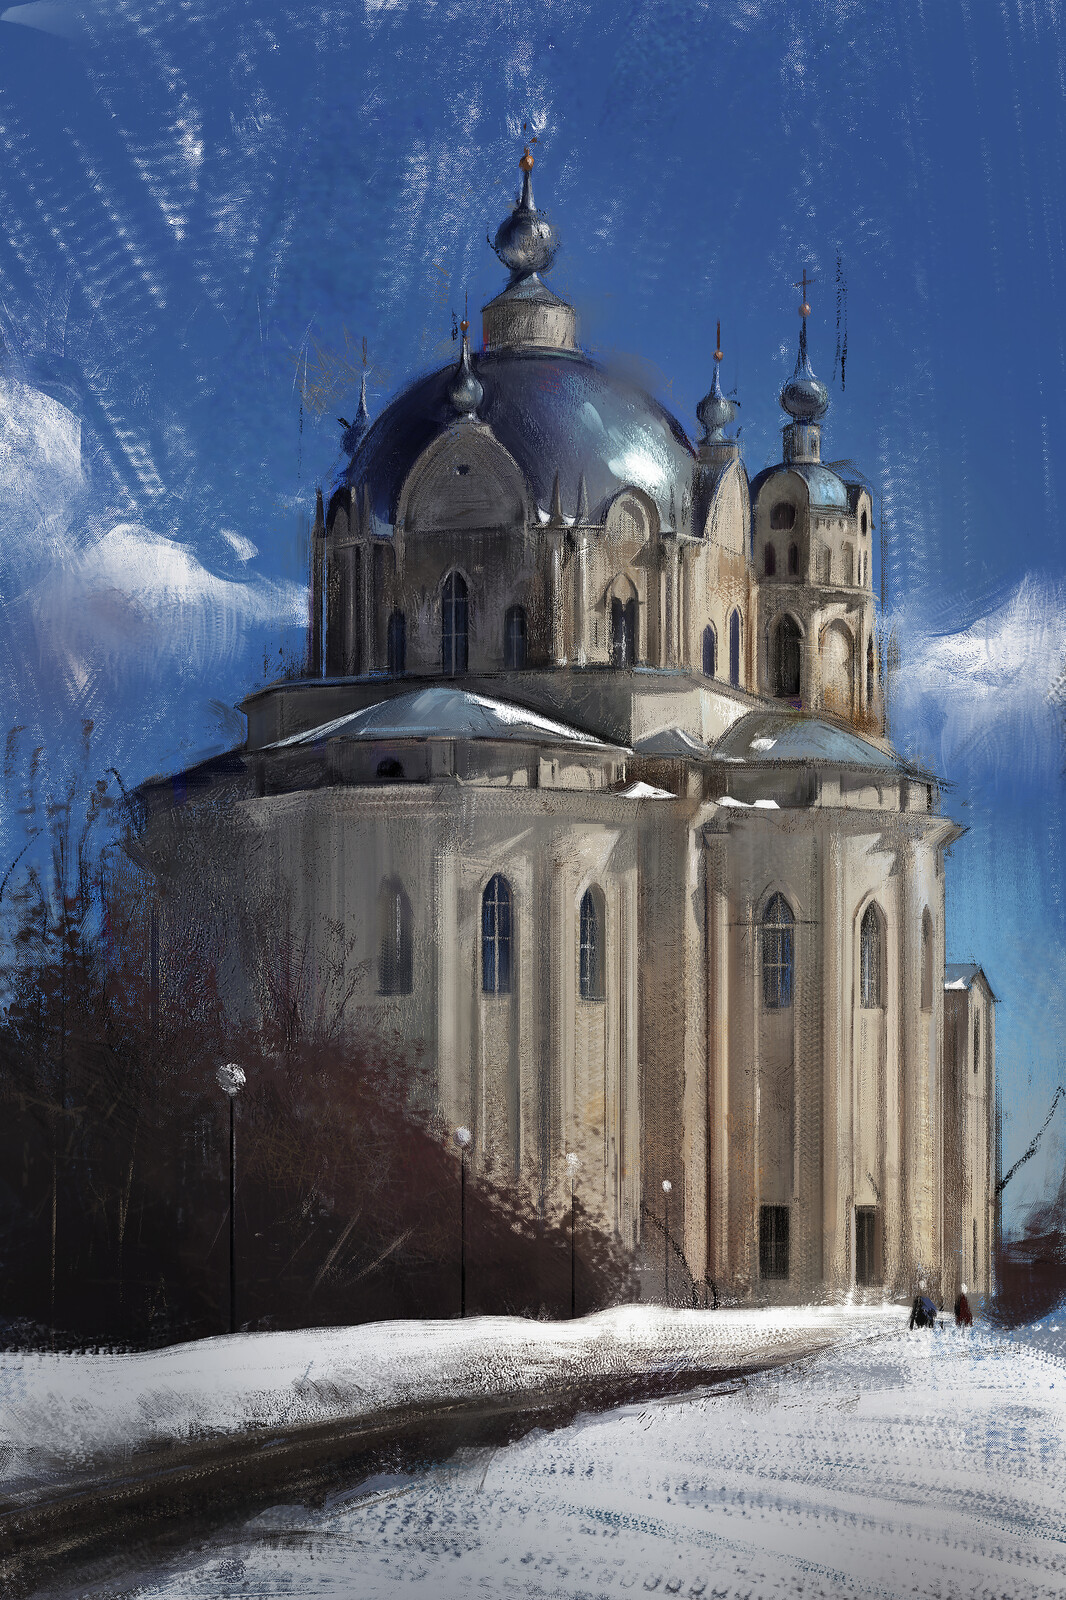 Two story trinity church in Moscow